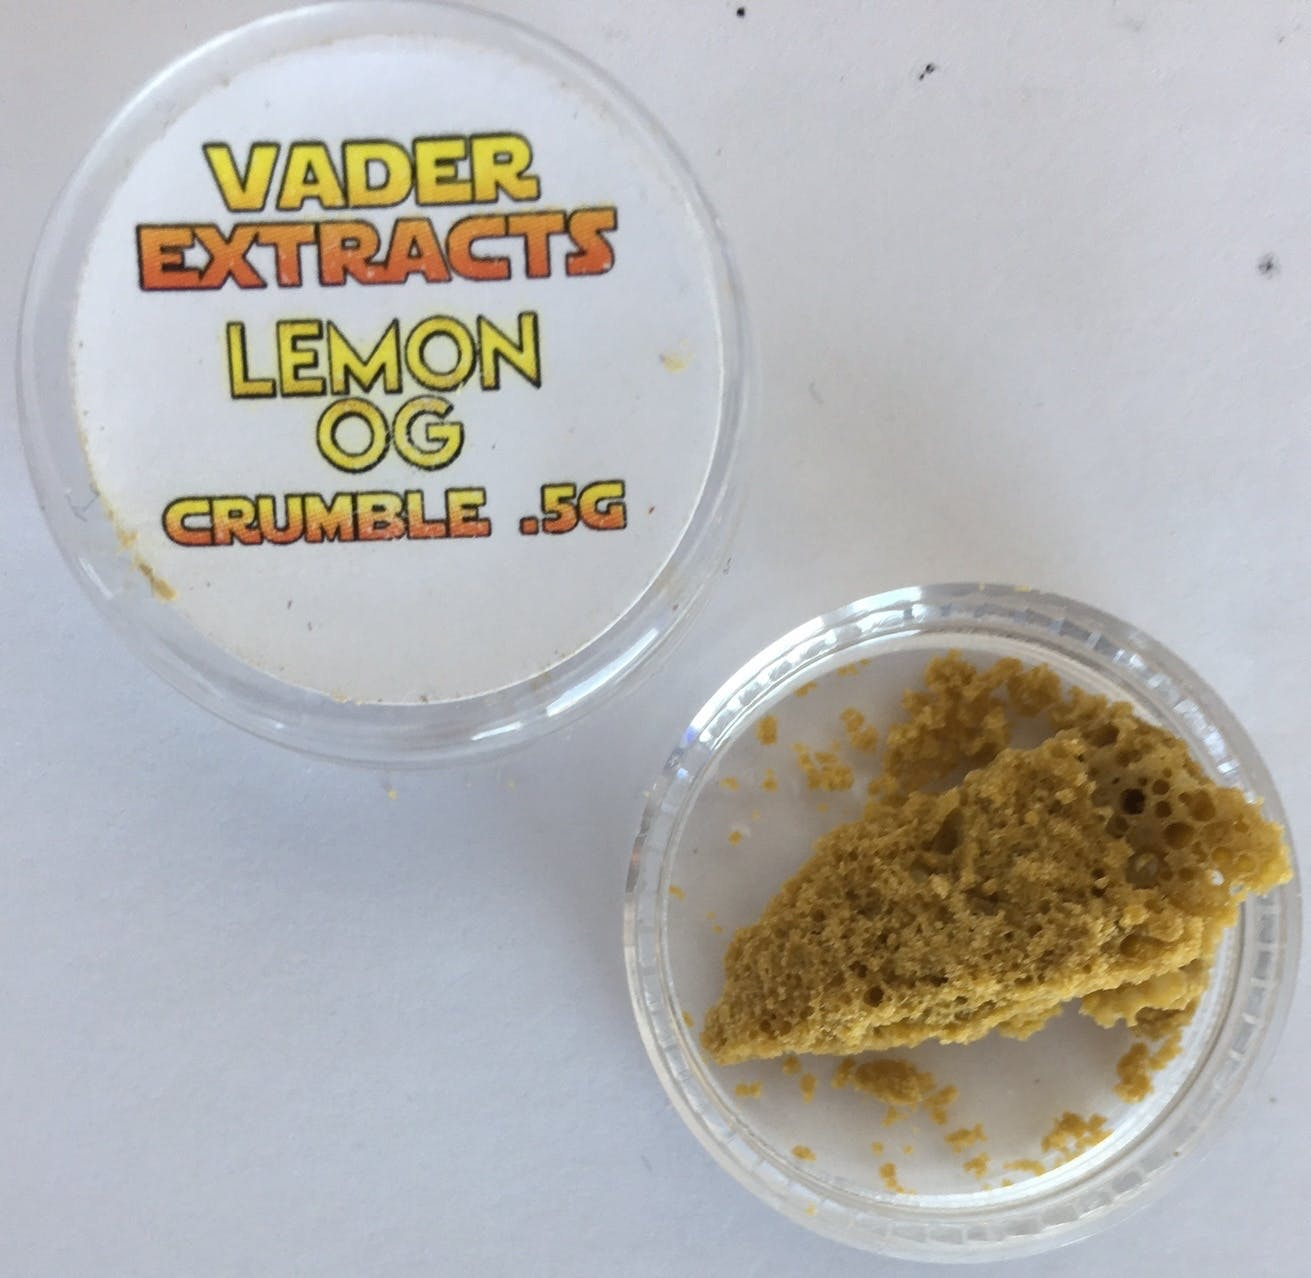 marijuana-dispensaries-high-life-collective-in-east-los-angeles-vader-extracts-trim-crumble